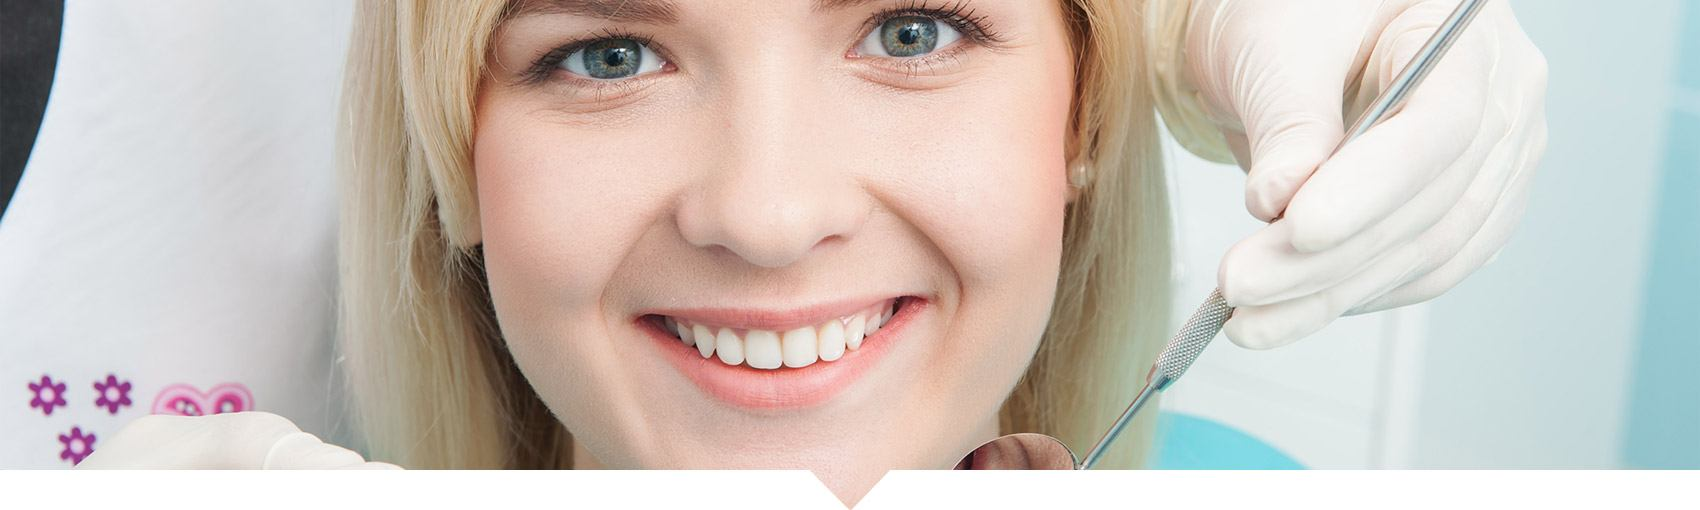 Prophylaxis (Teeth Cleaning), CA